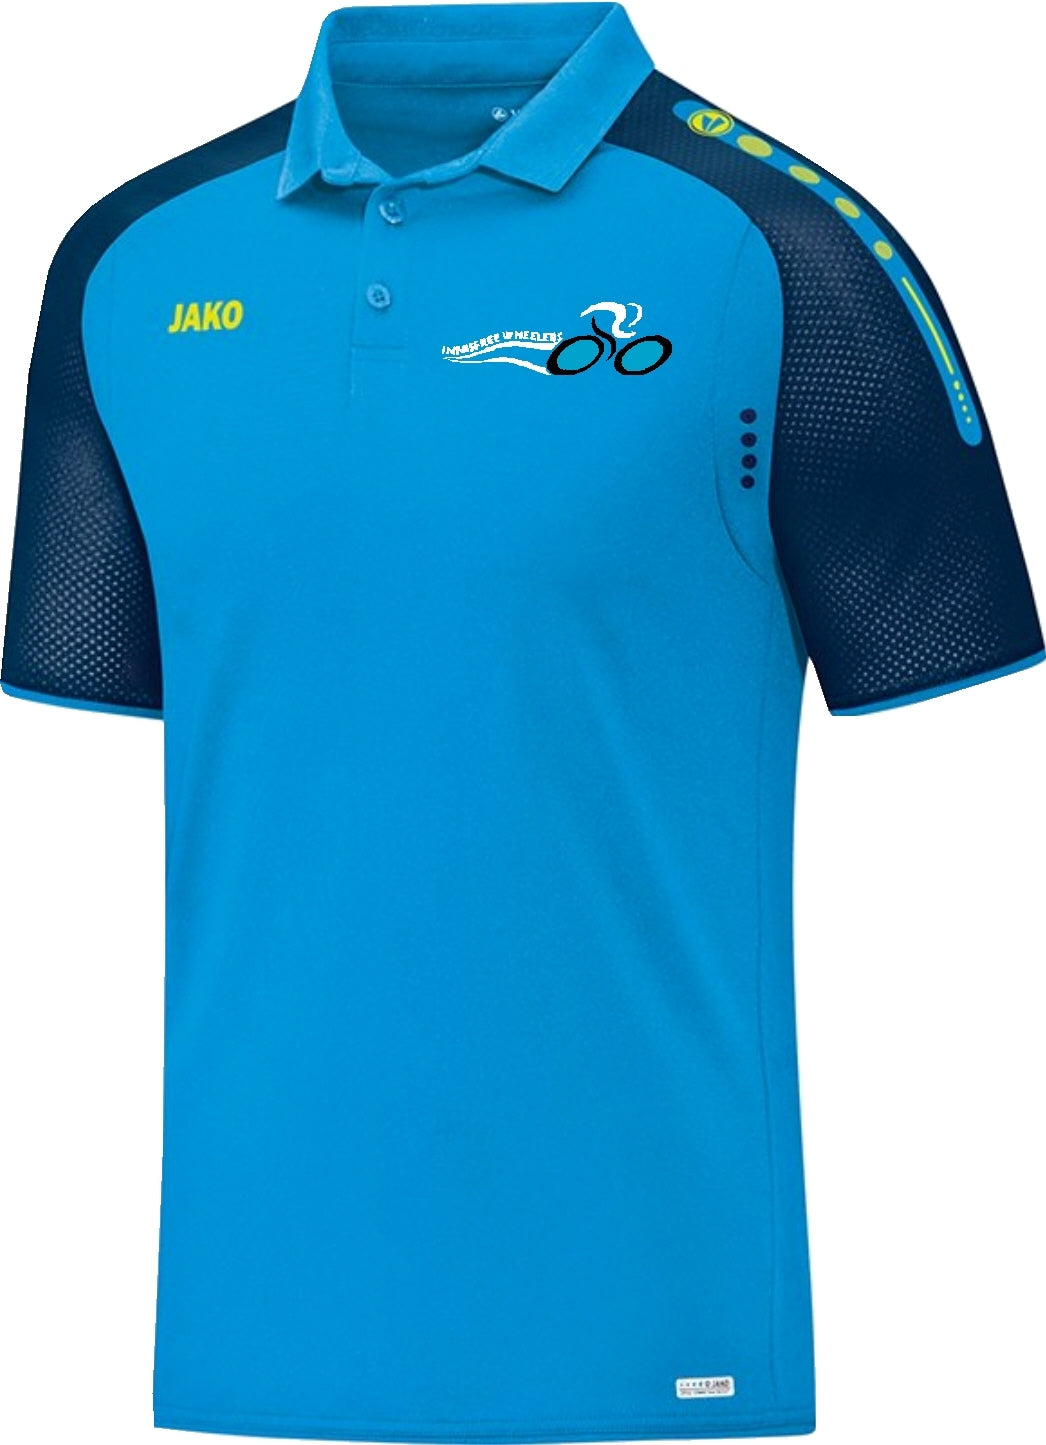 ADULT JAKO INNISFREE WHEELERS POLO IW6317 JAKO BLUE NAVY NEON YELLOW